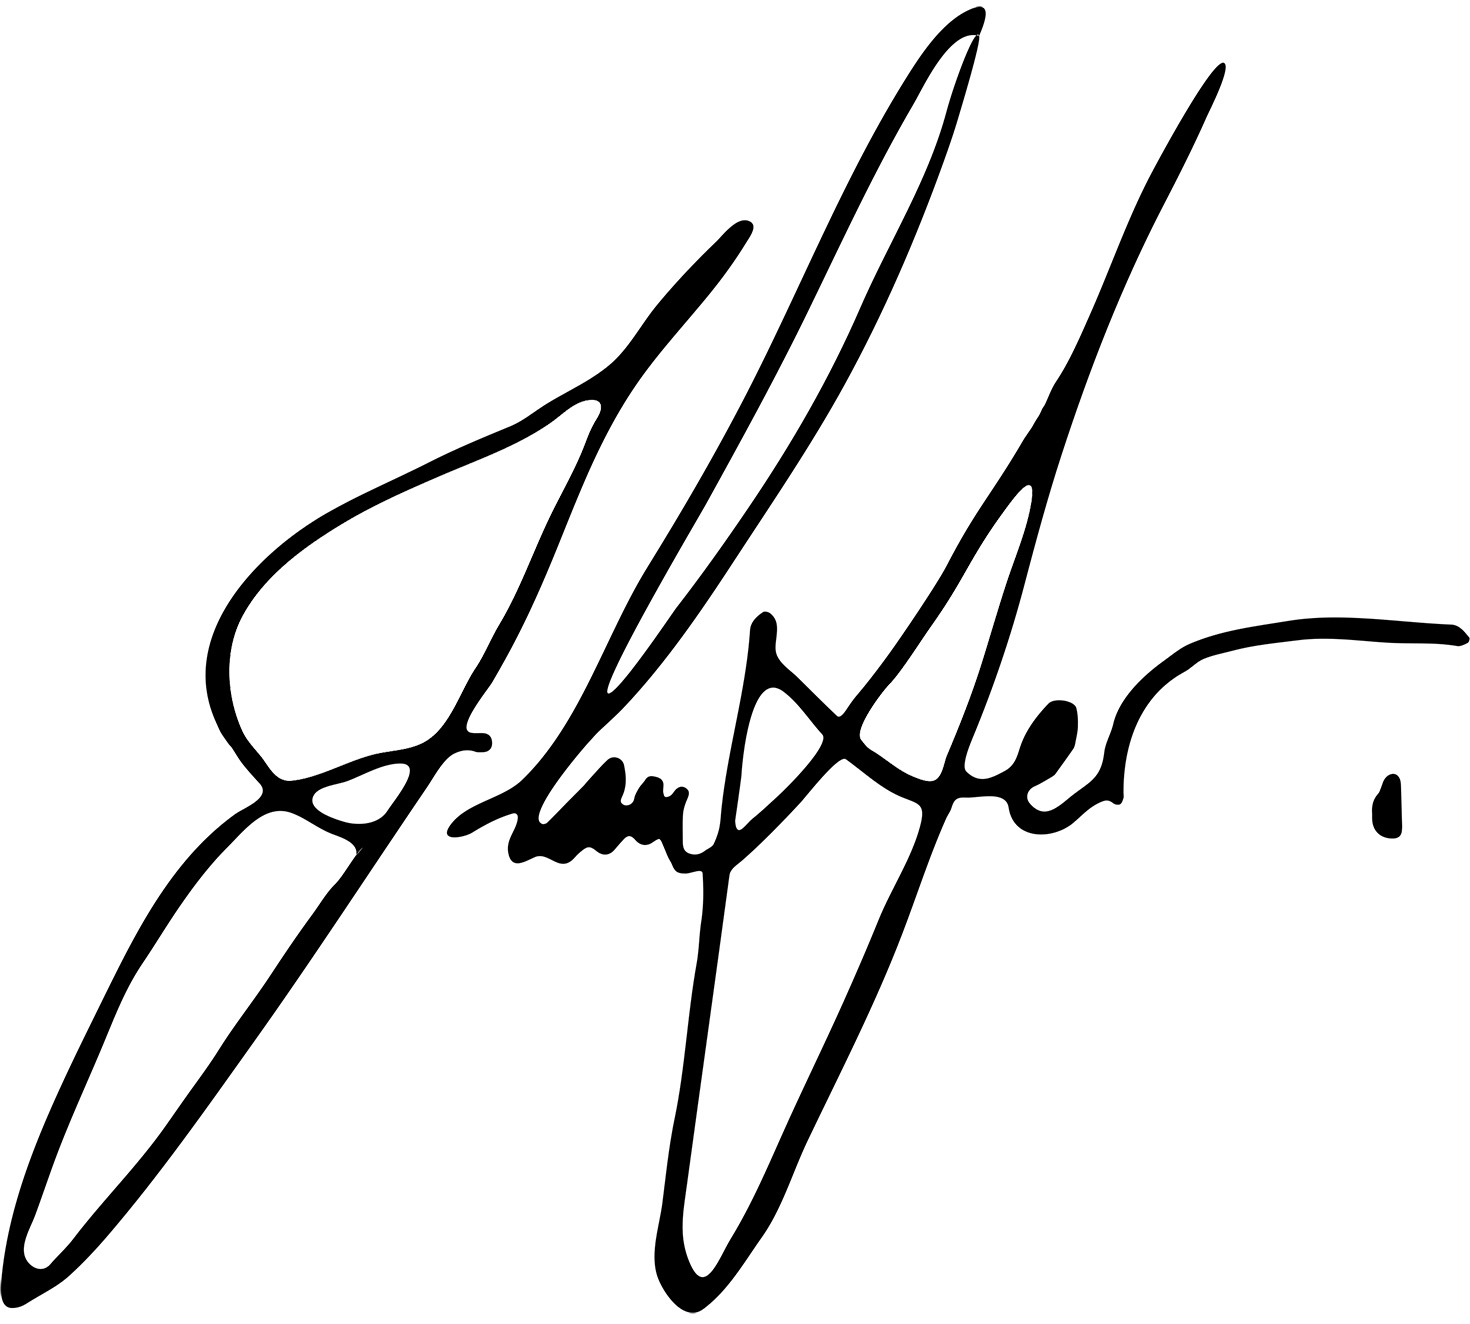 Jess Laufer Signature